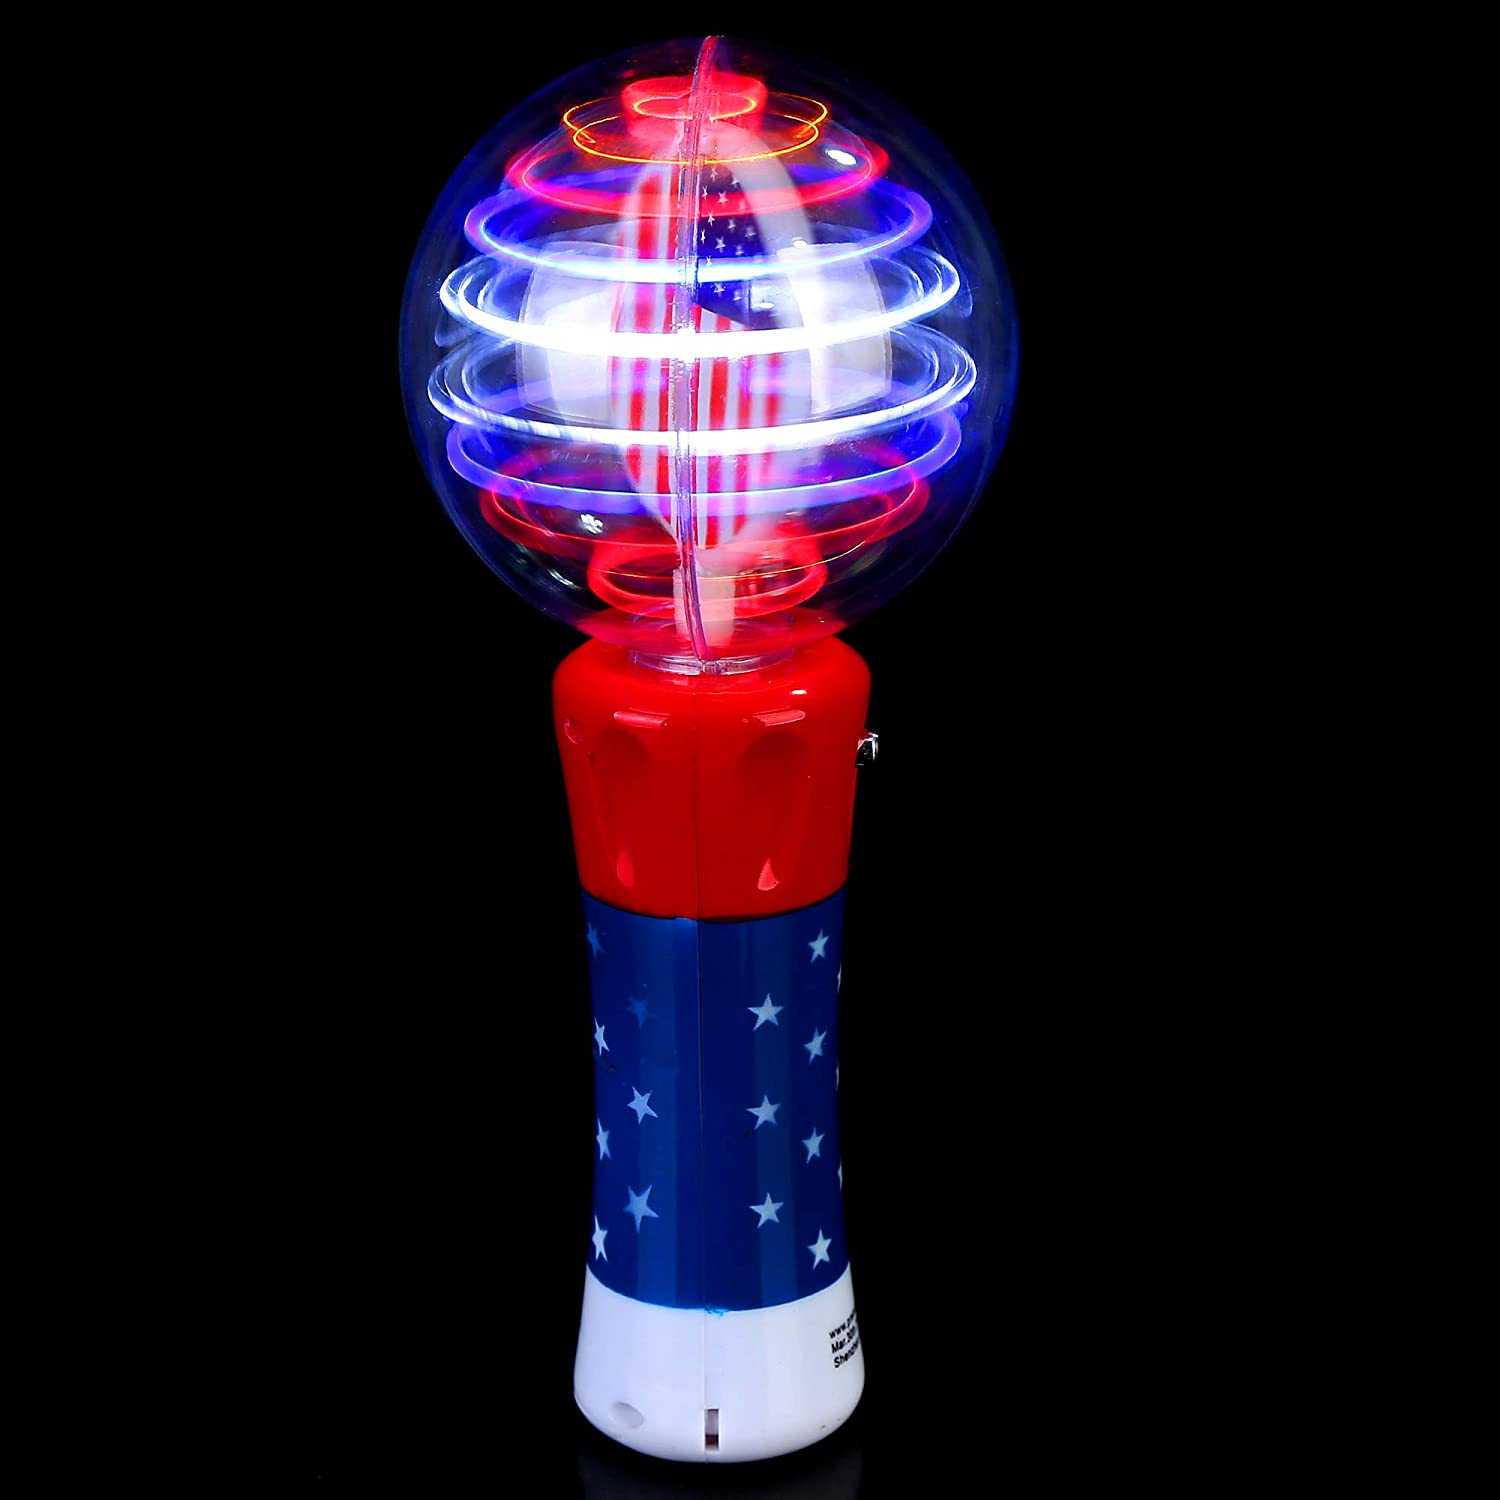 Fun Central O561 LED Spinner Wand Red-White-Blue